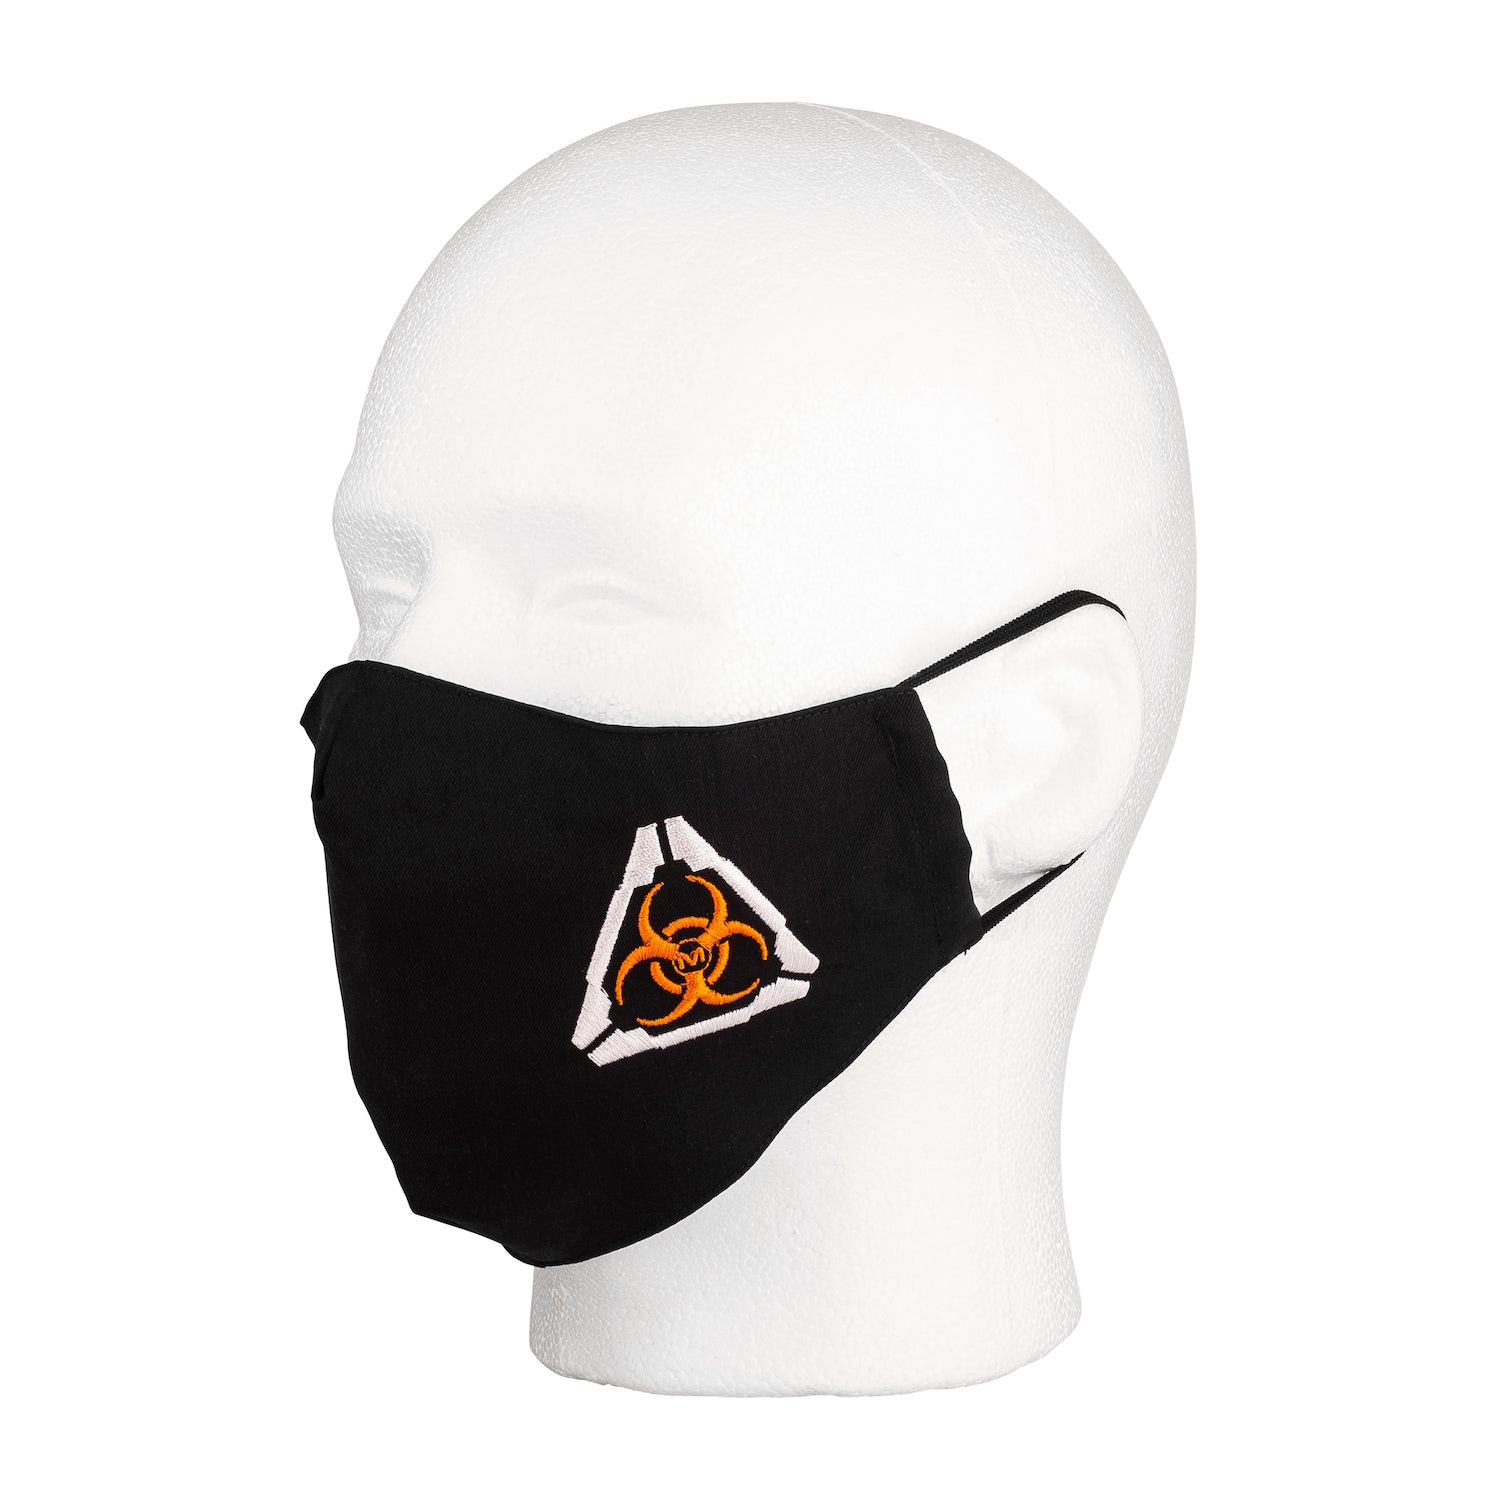 Three quarter view of the MIRA Safety Mask with biohazard insignia on a mannequin head